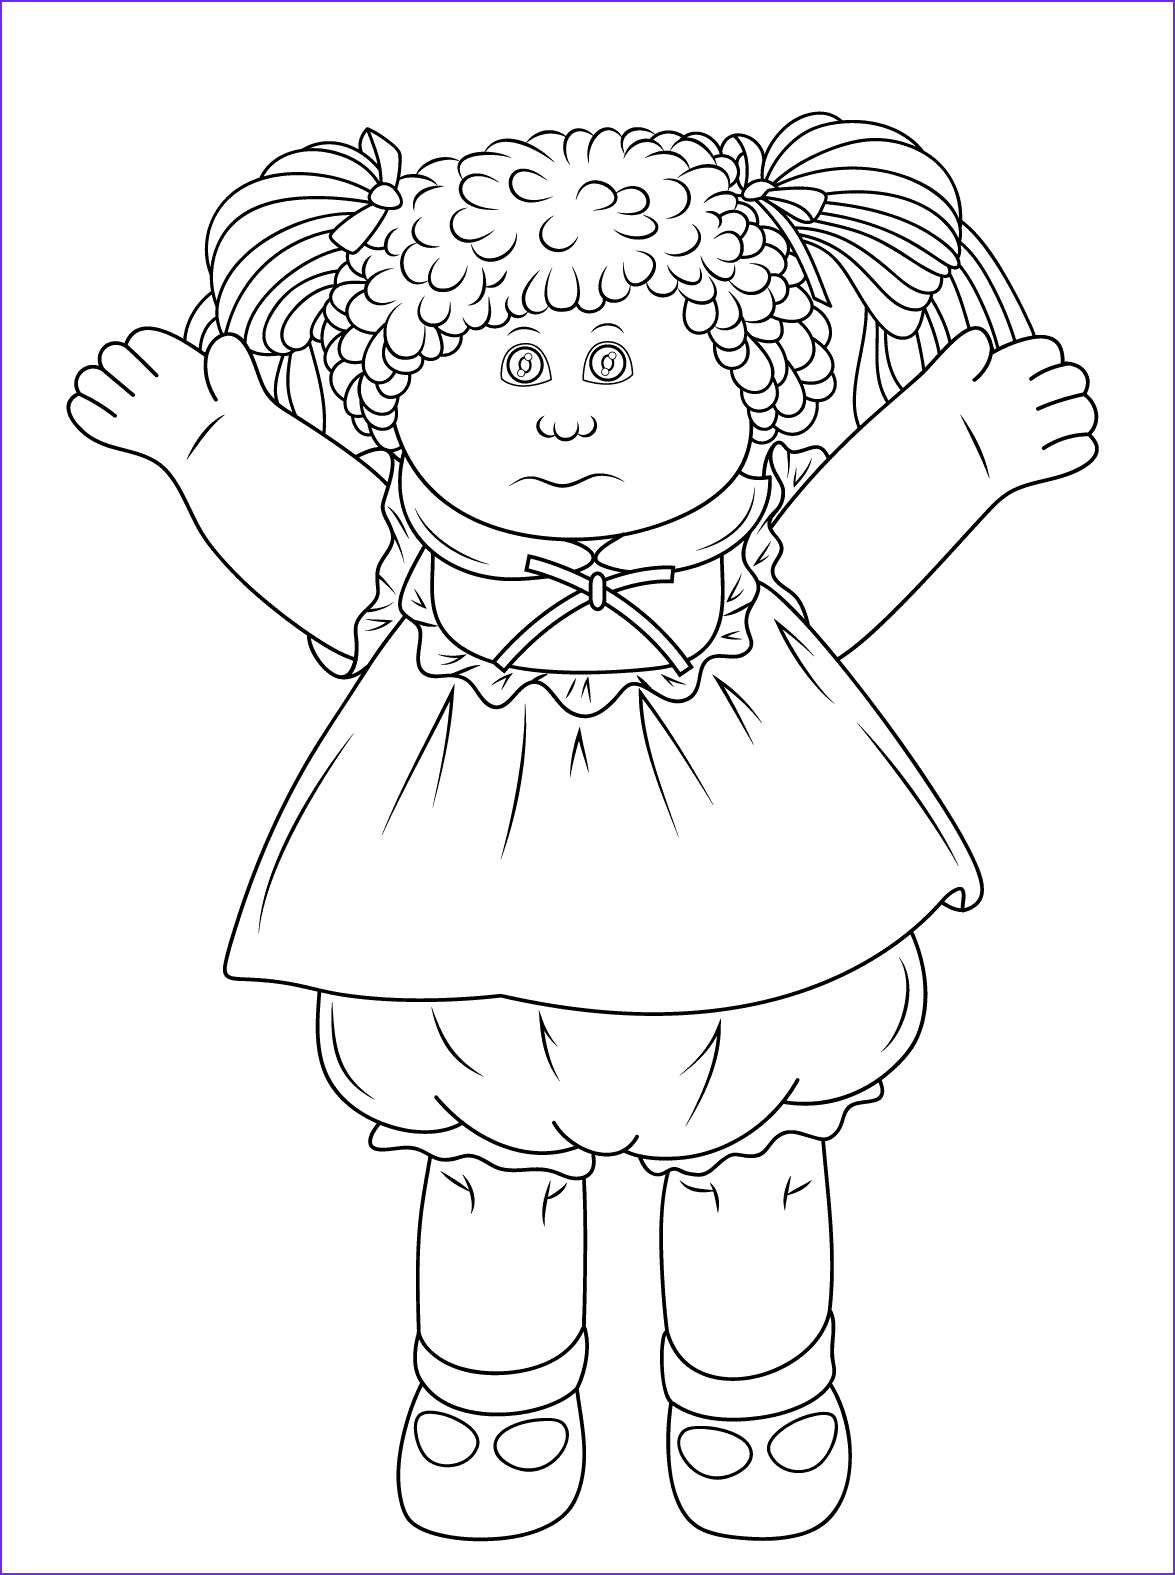 Coloring Sheets for Kids Inspirational Photos Doll Coloring Pages Best Coloring Pages for Kids